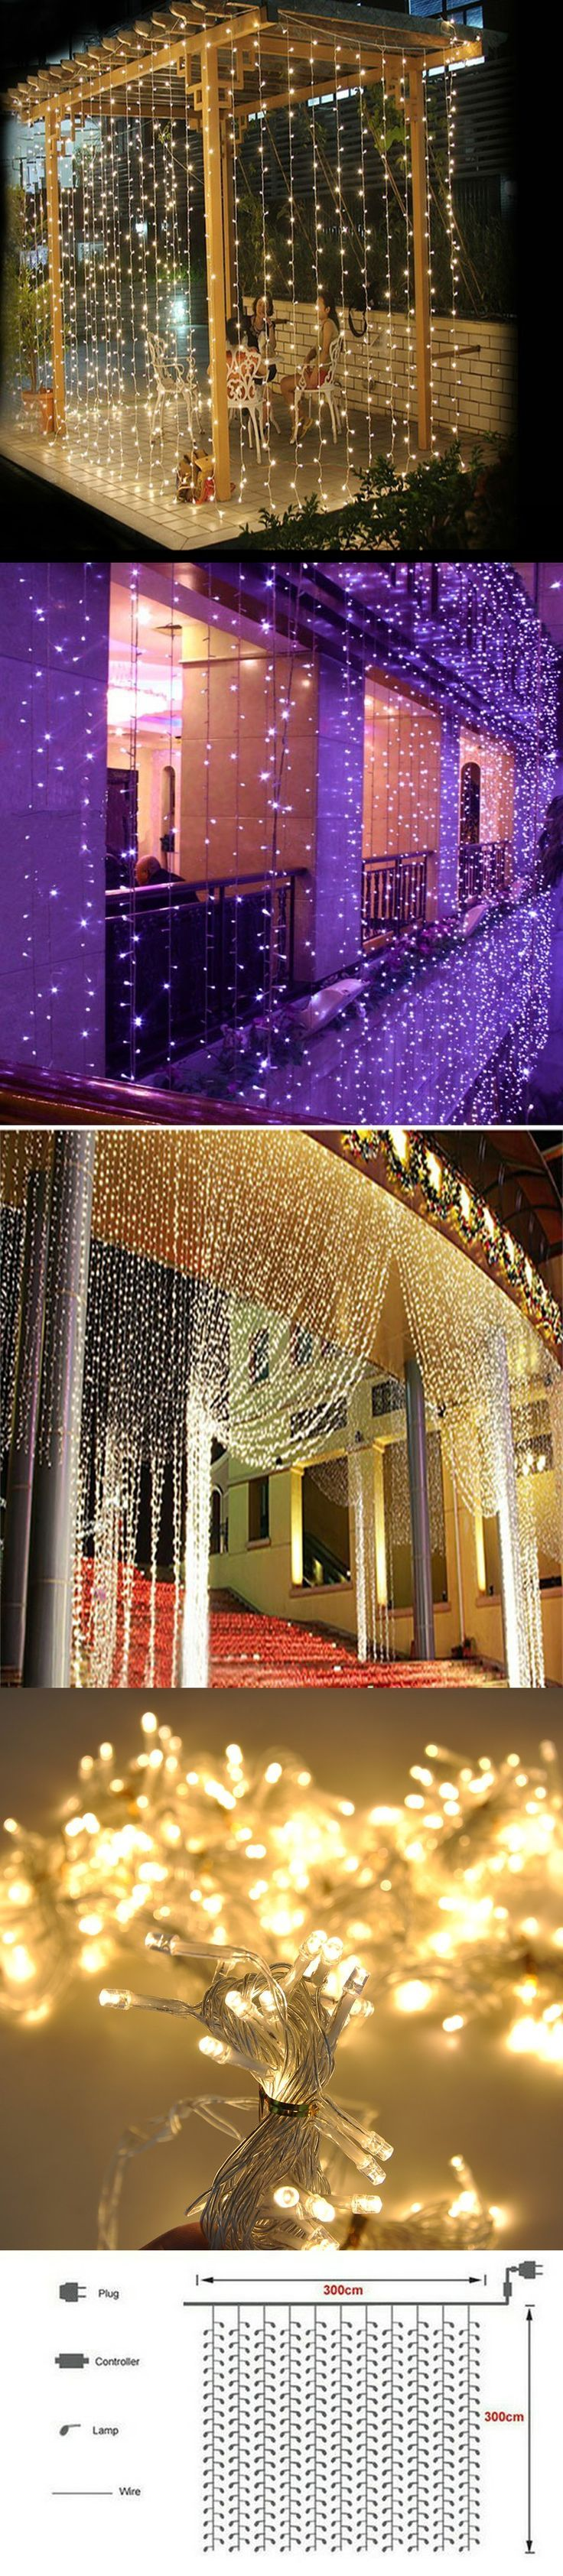 String curtain ideas - 2016 3m X 3m 300 Led Outdoor Home Warm White Christmas Decorative Xmas String Fairy Curtain Garlands Party Lights For Wedding